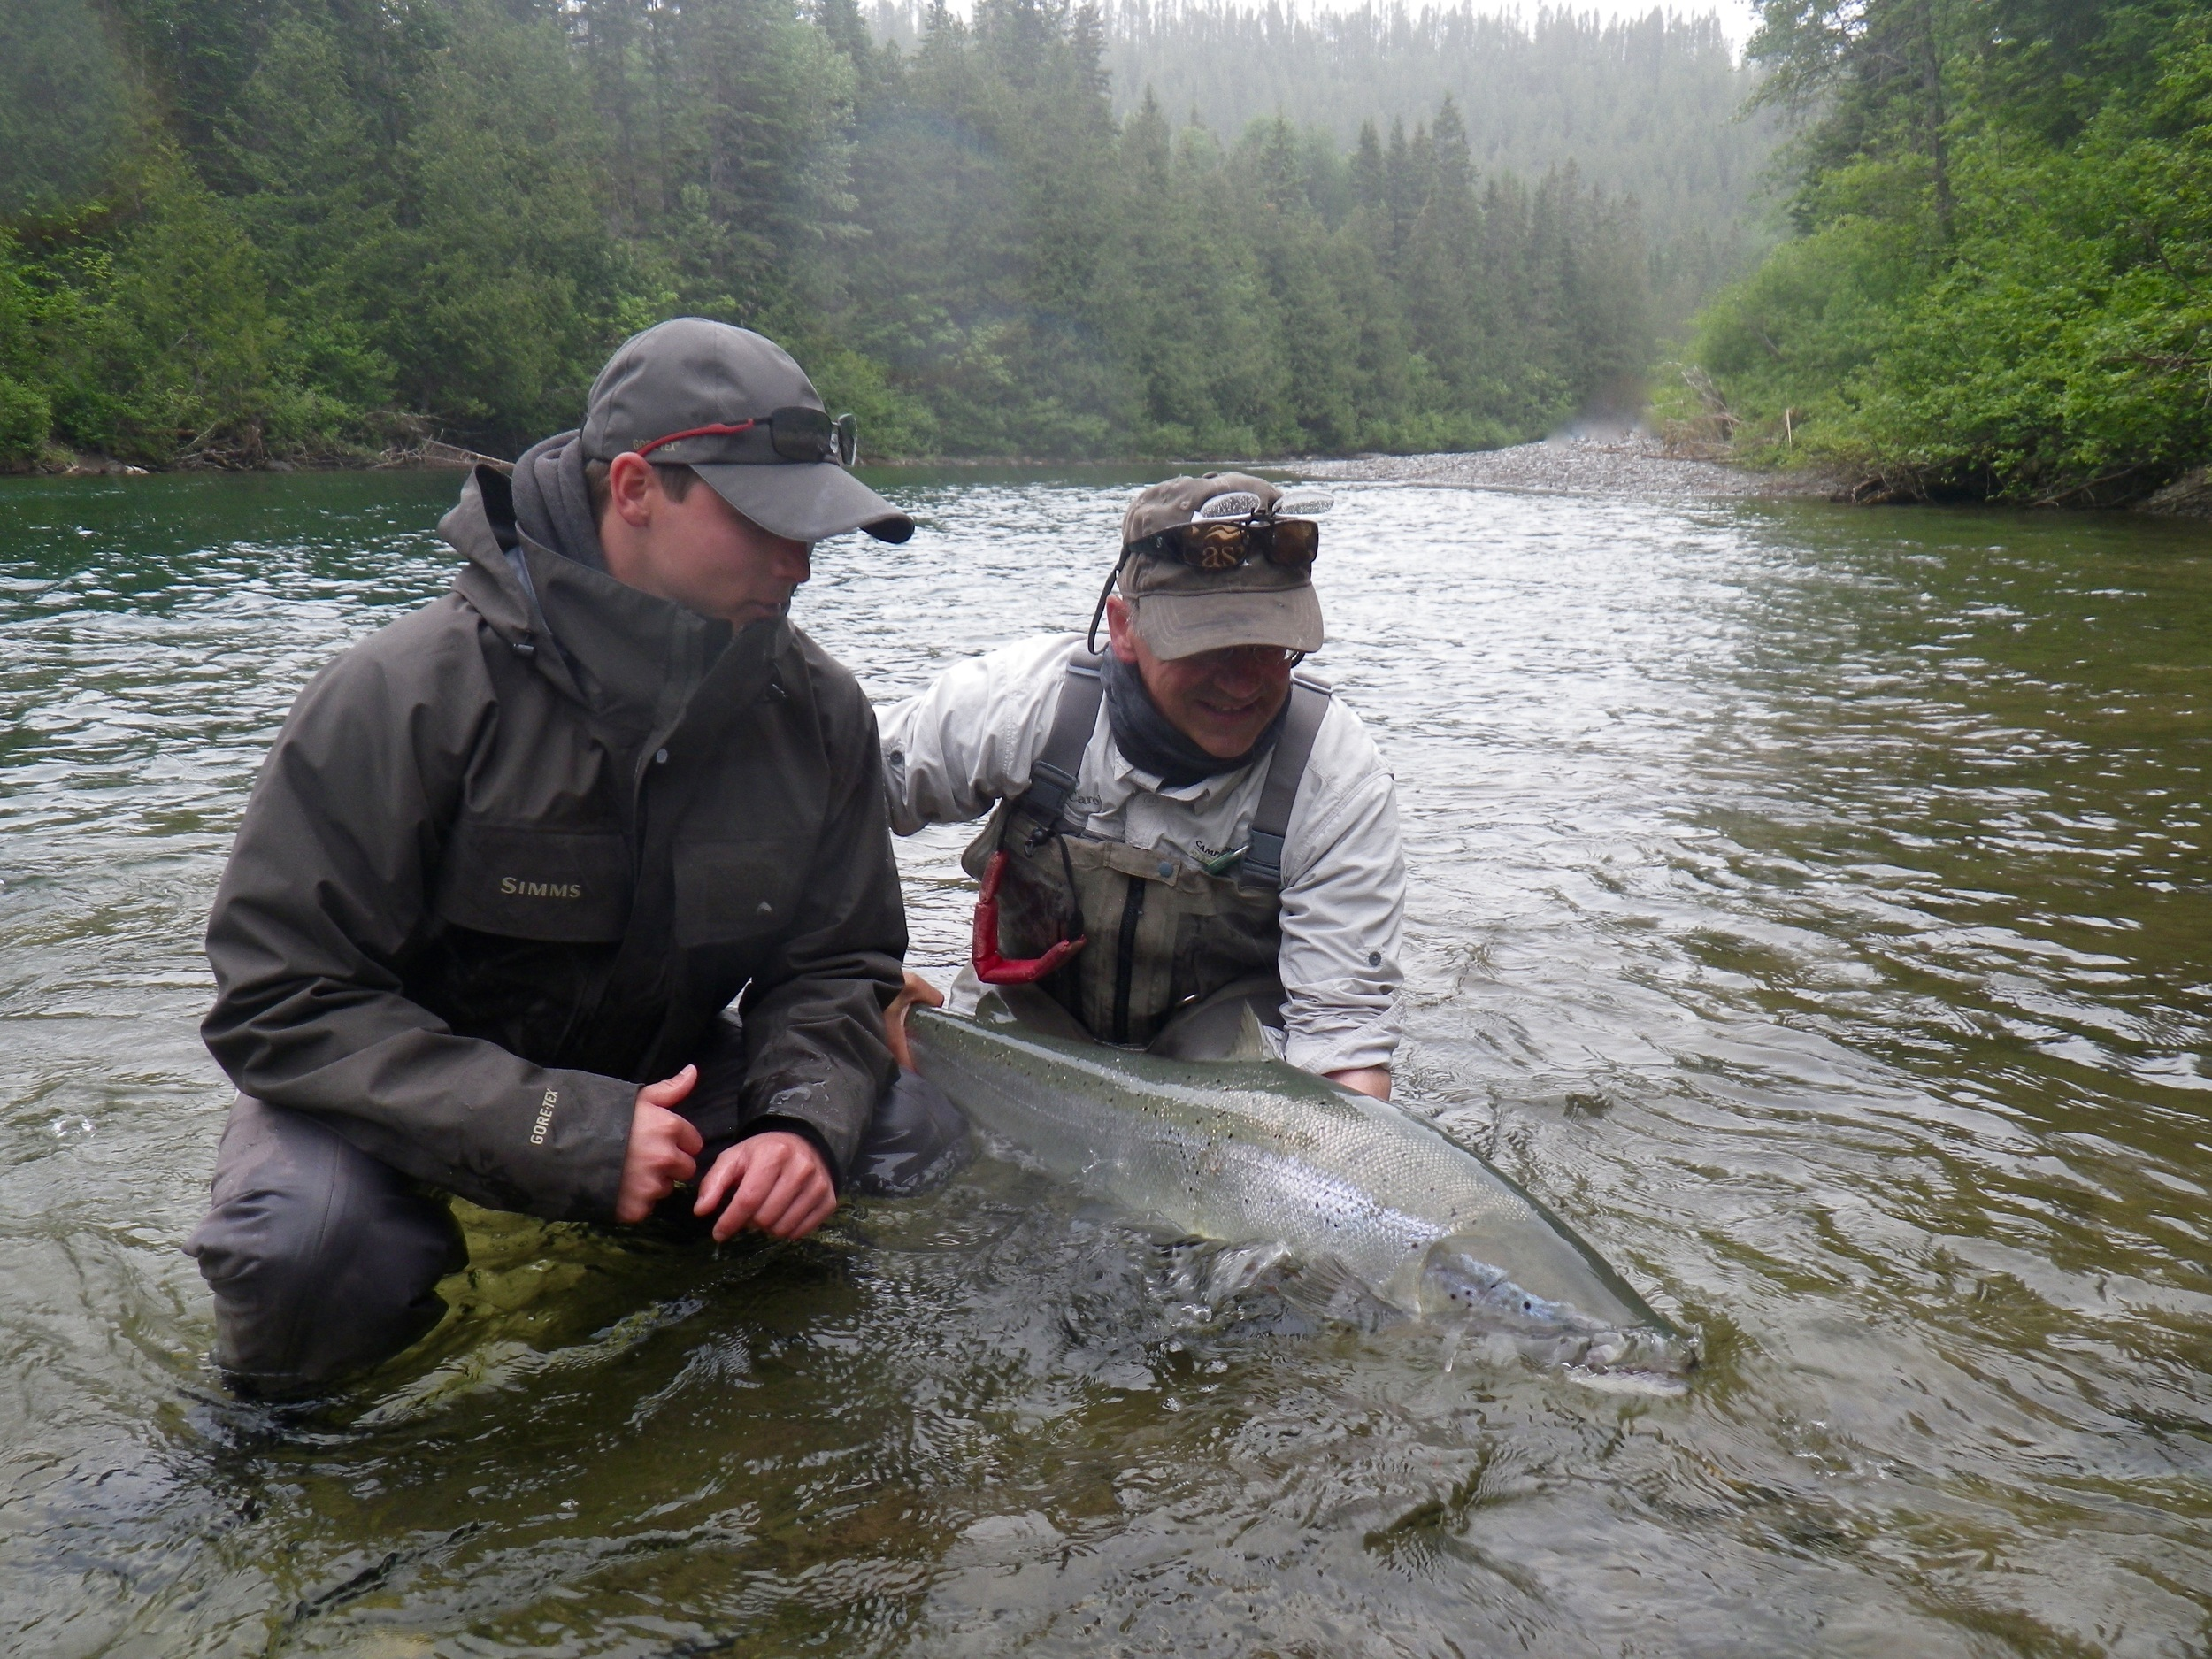 Louis Turcotte with Camp Bonaventure guide Carol Barriault on the Bonaventure, Nice fish Louis!